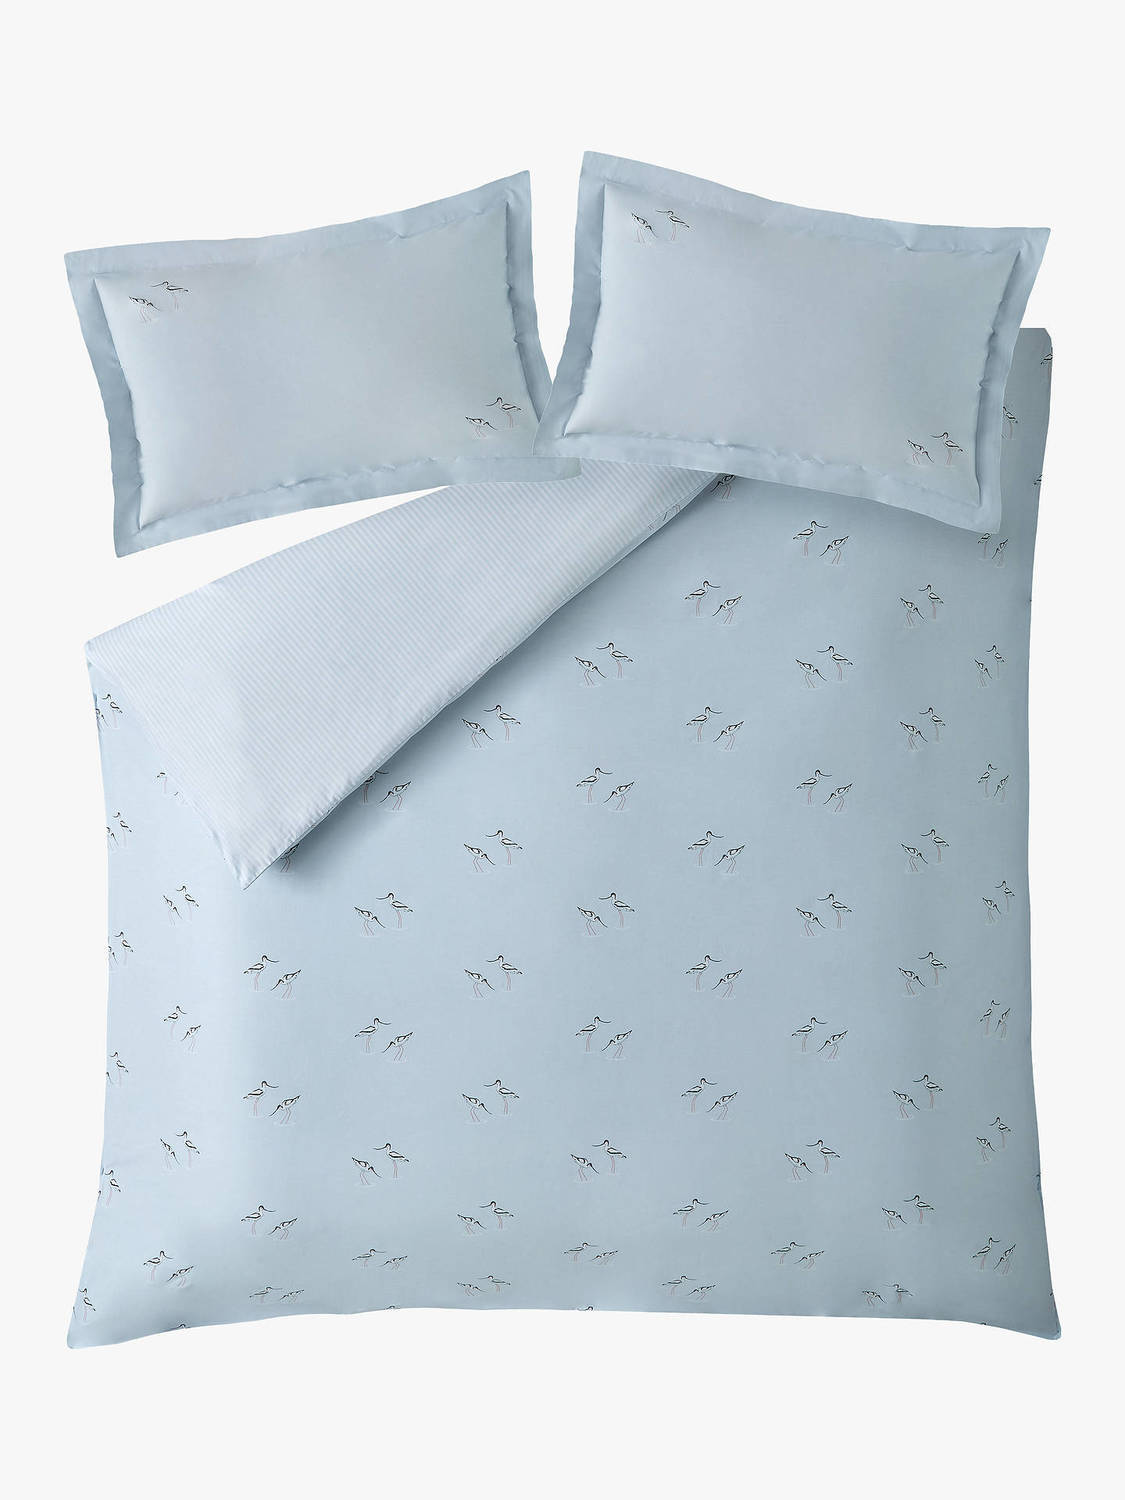 Sophie Allport Coastal Birds Oxford Pillowcase Pair